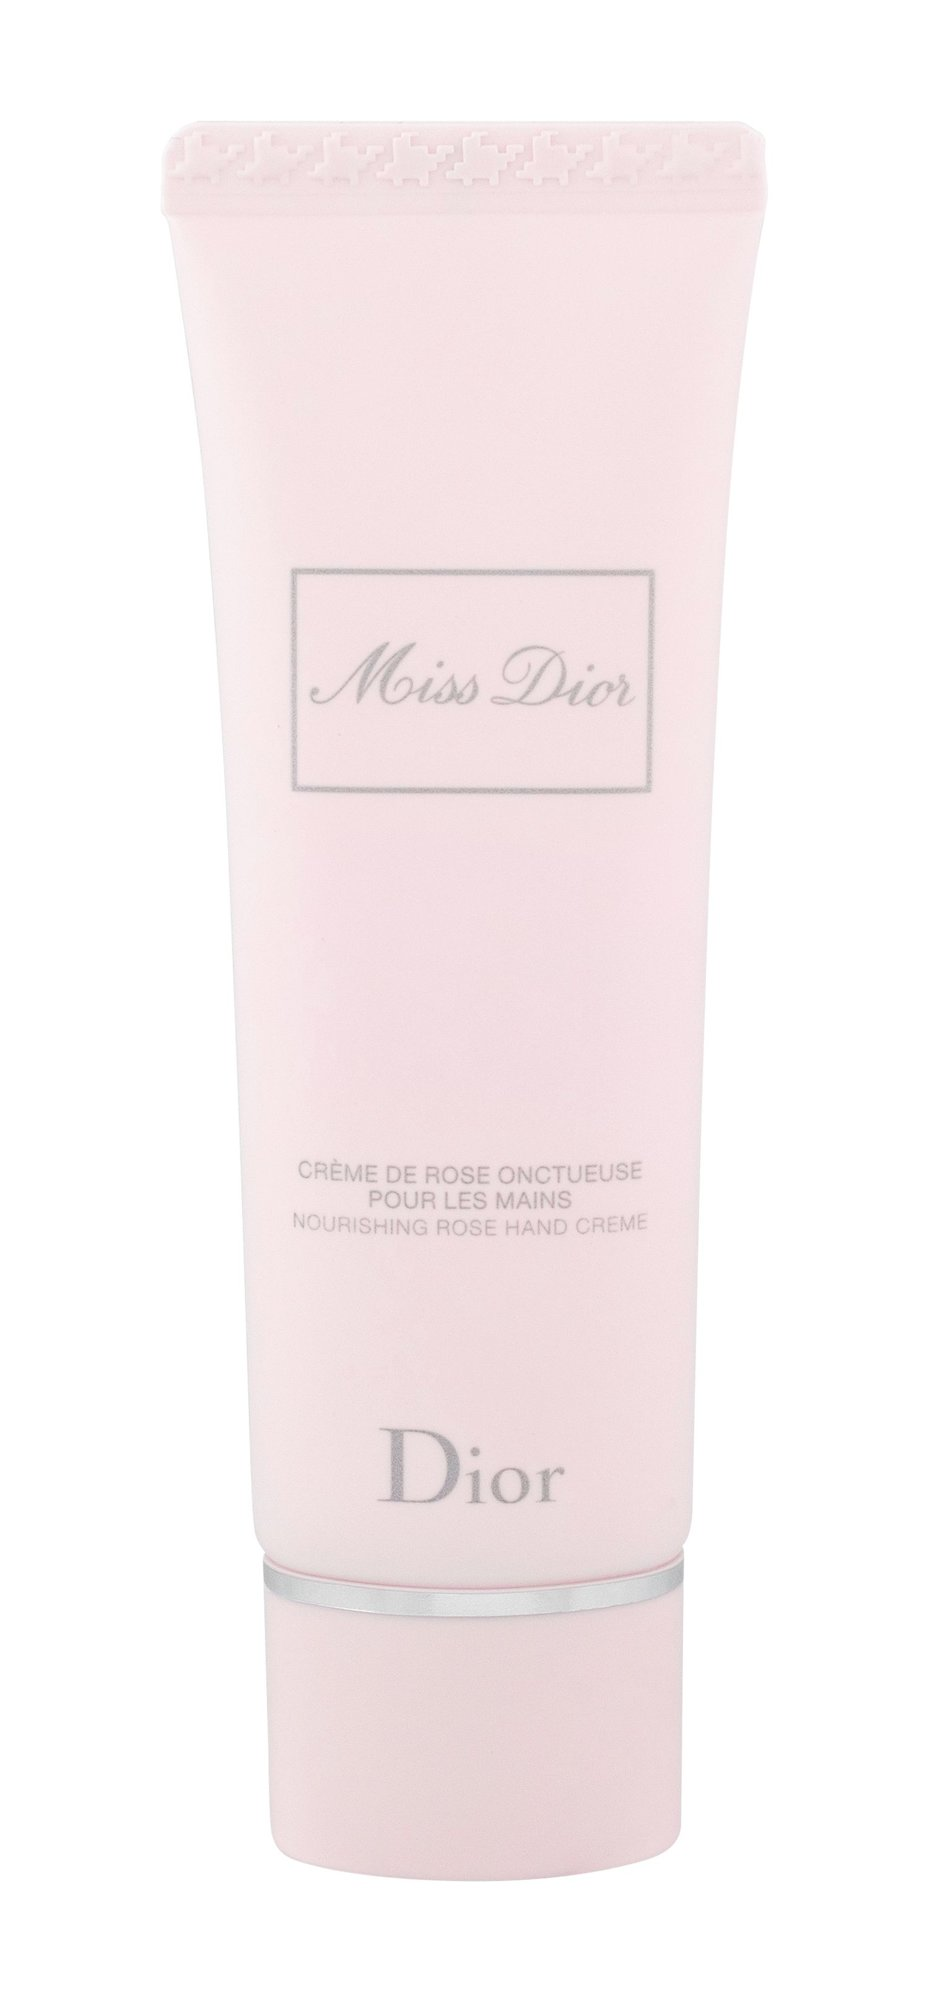 Christian Dior Miss Dior Hand Cream 50ml